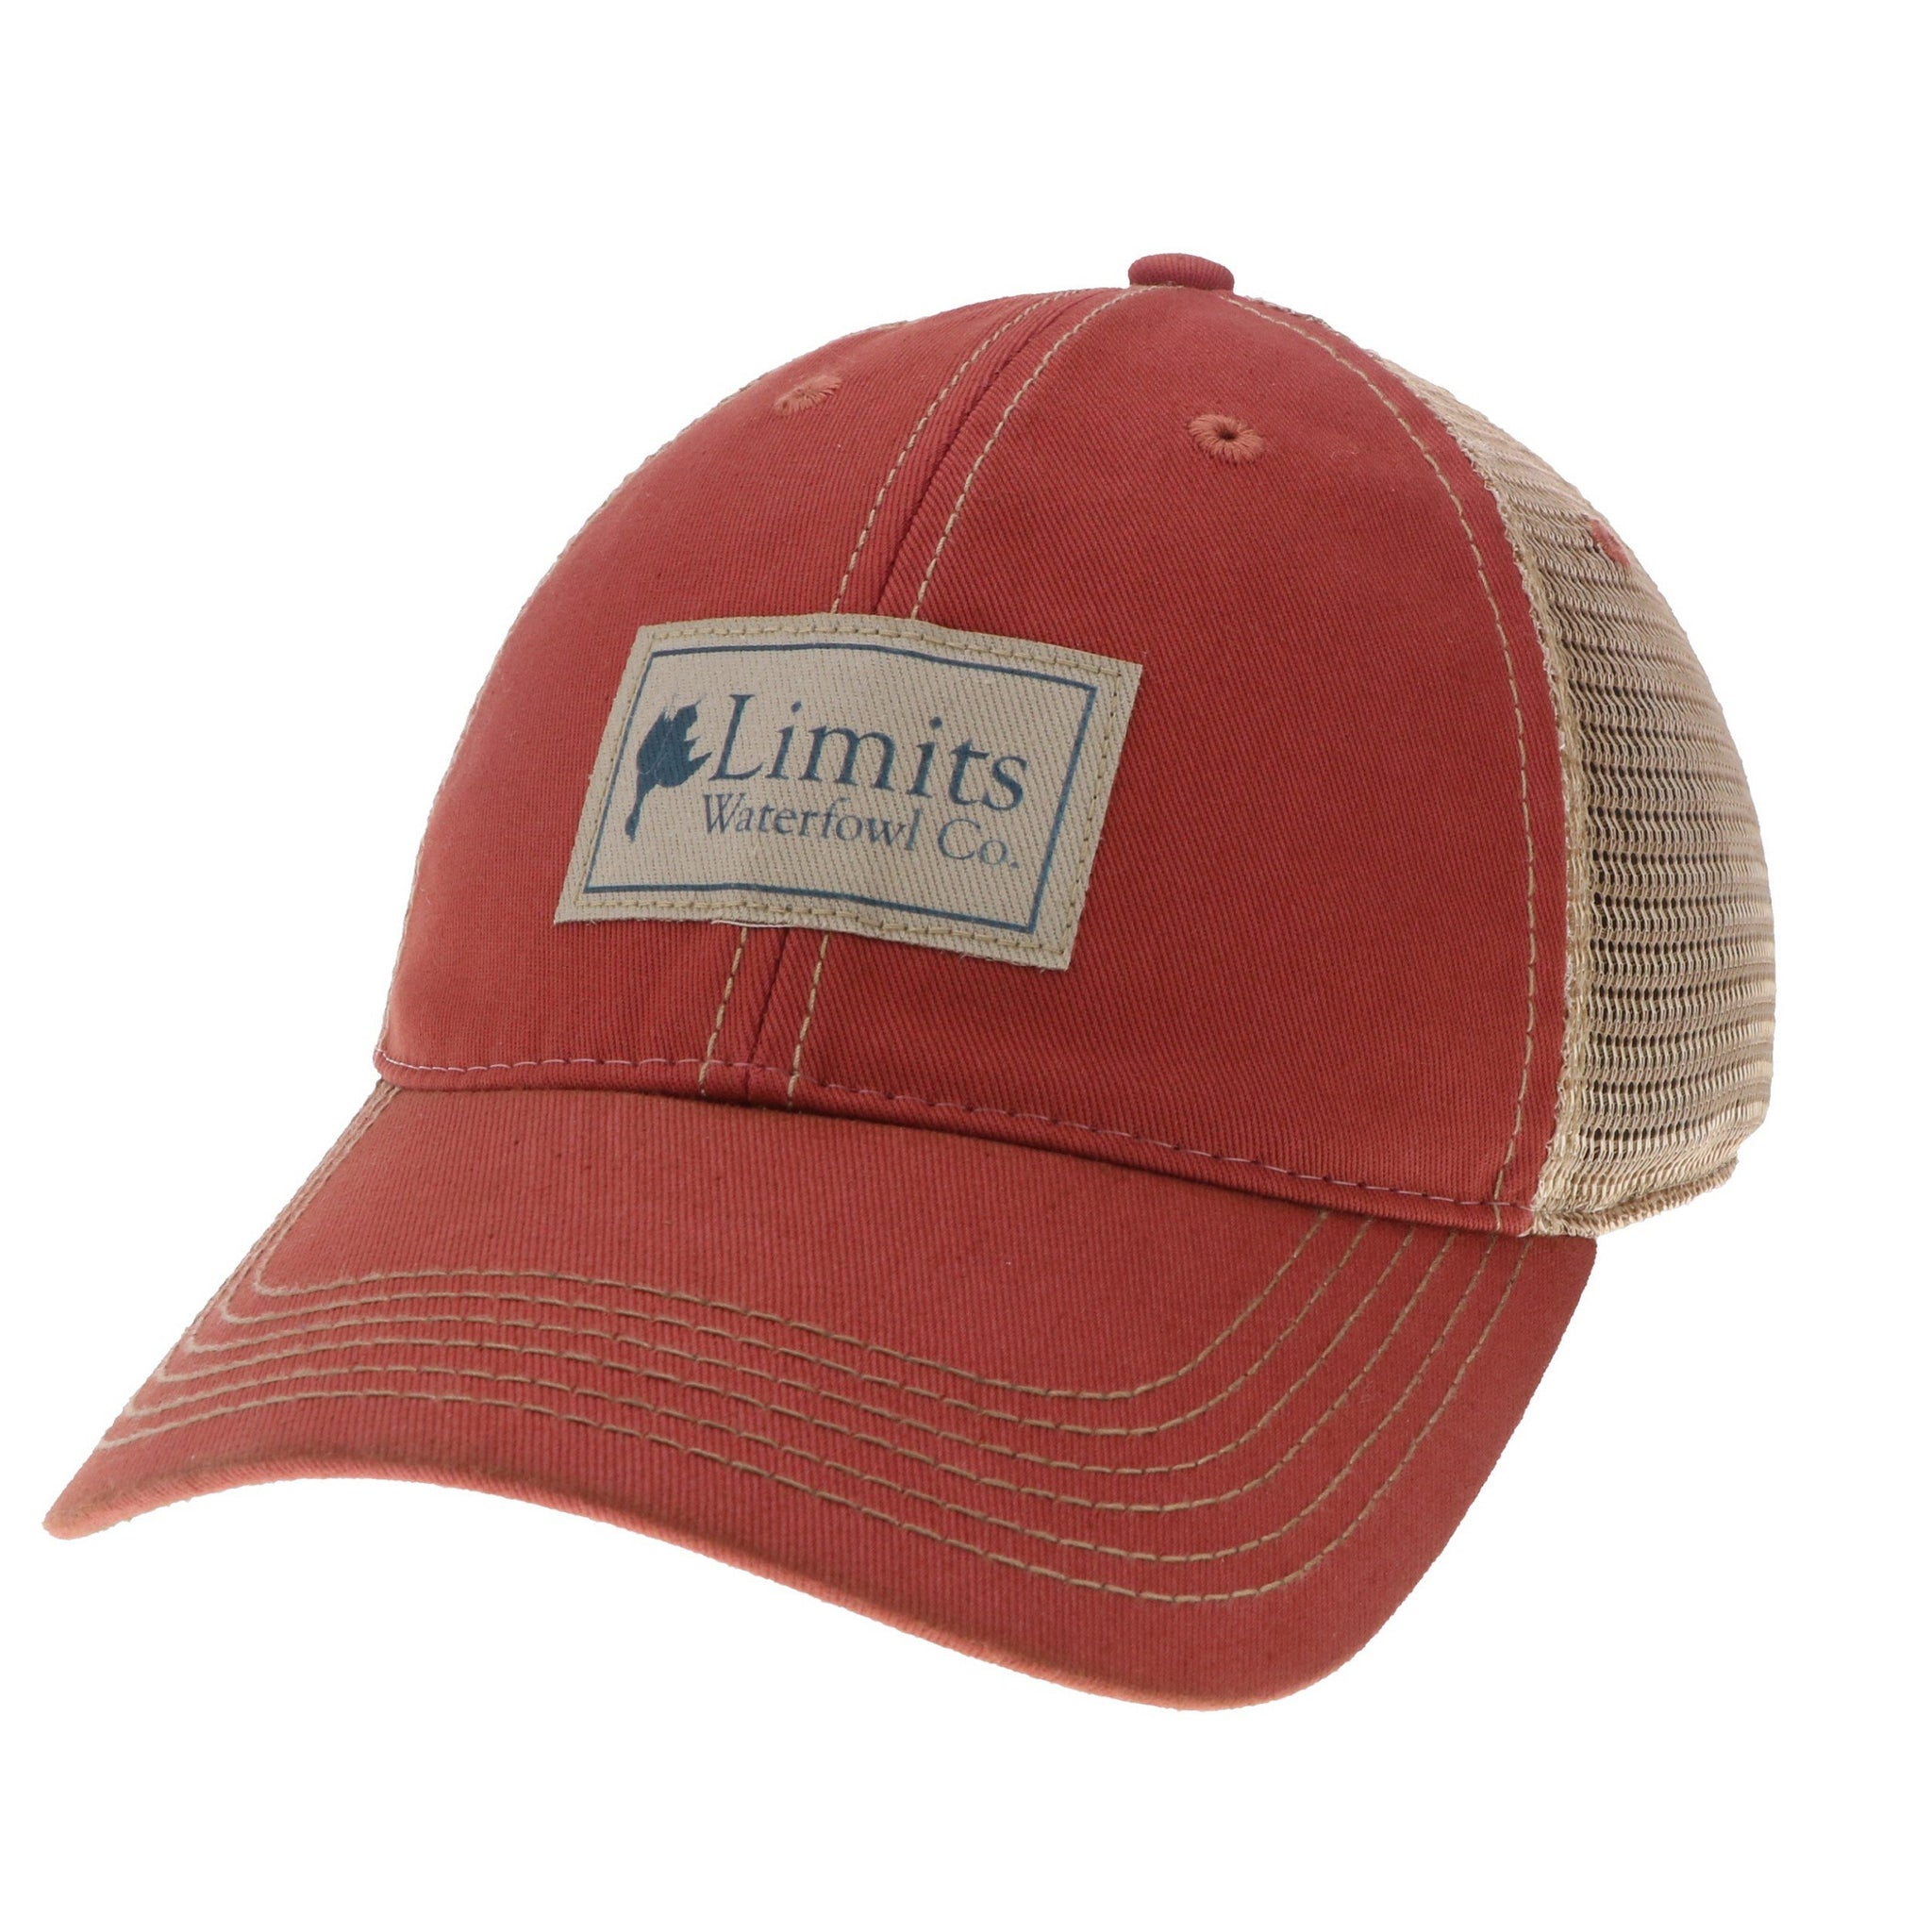 Nantucket Twill Patch Trucker-hat-Limits Waterfowl Co.-Limits Waterfowl Co. aa8501af579